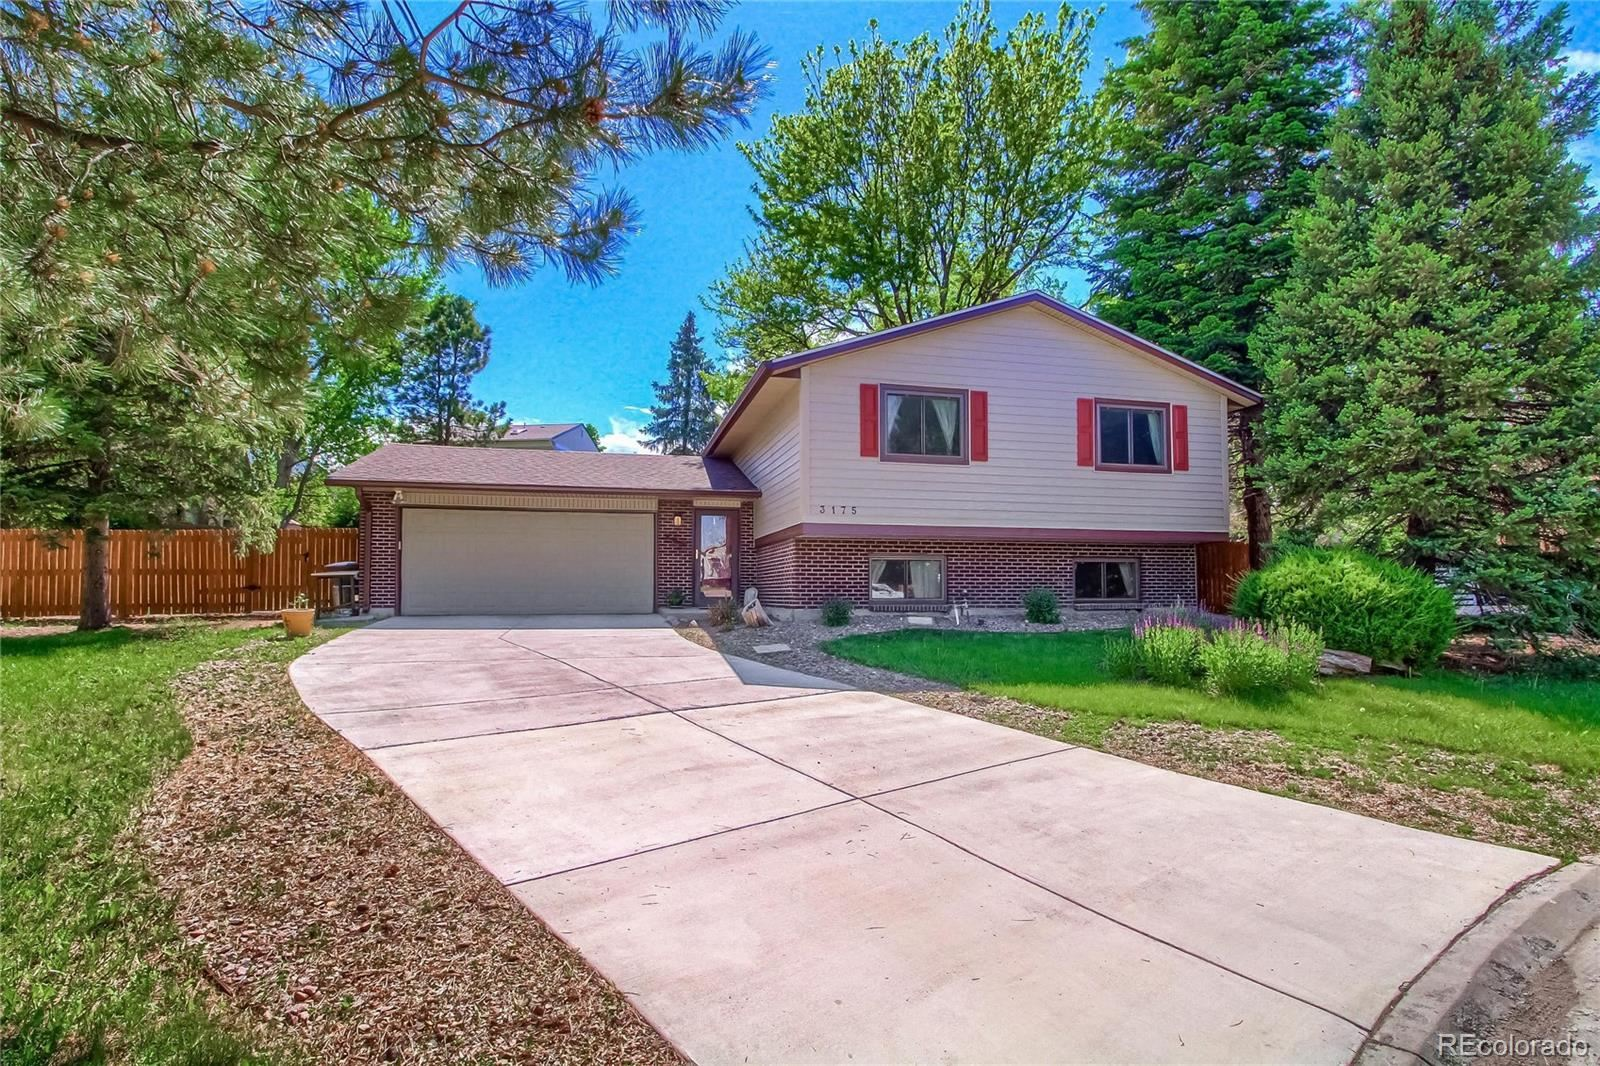 3175 S Ensenada Way, Aurora, CO 80013 - #: 2183835